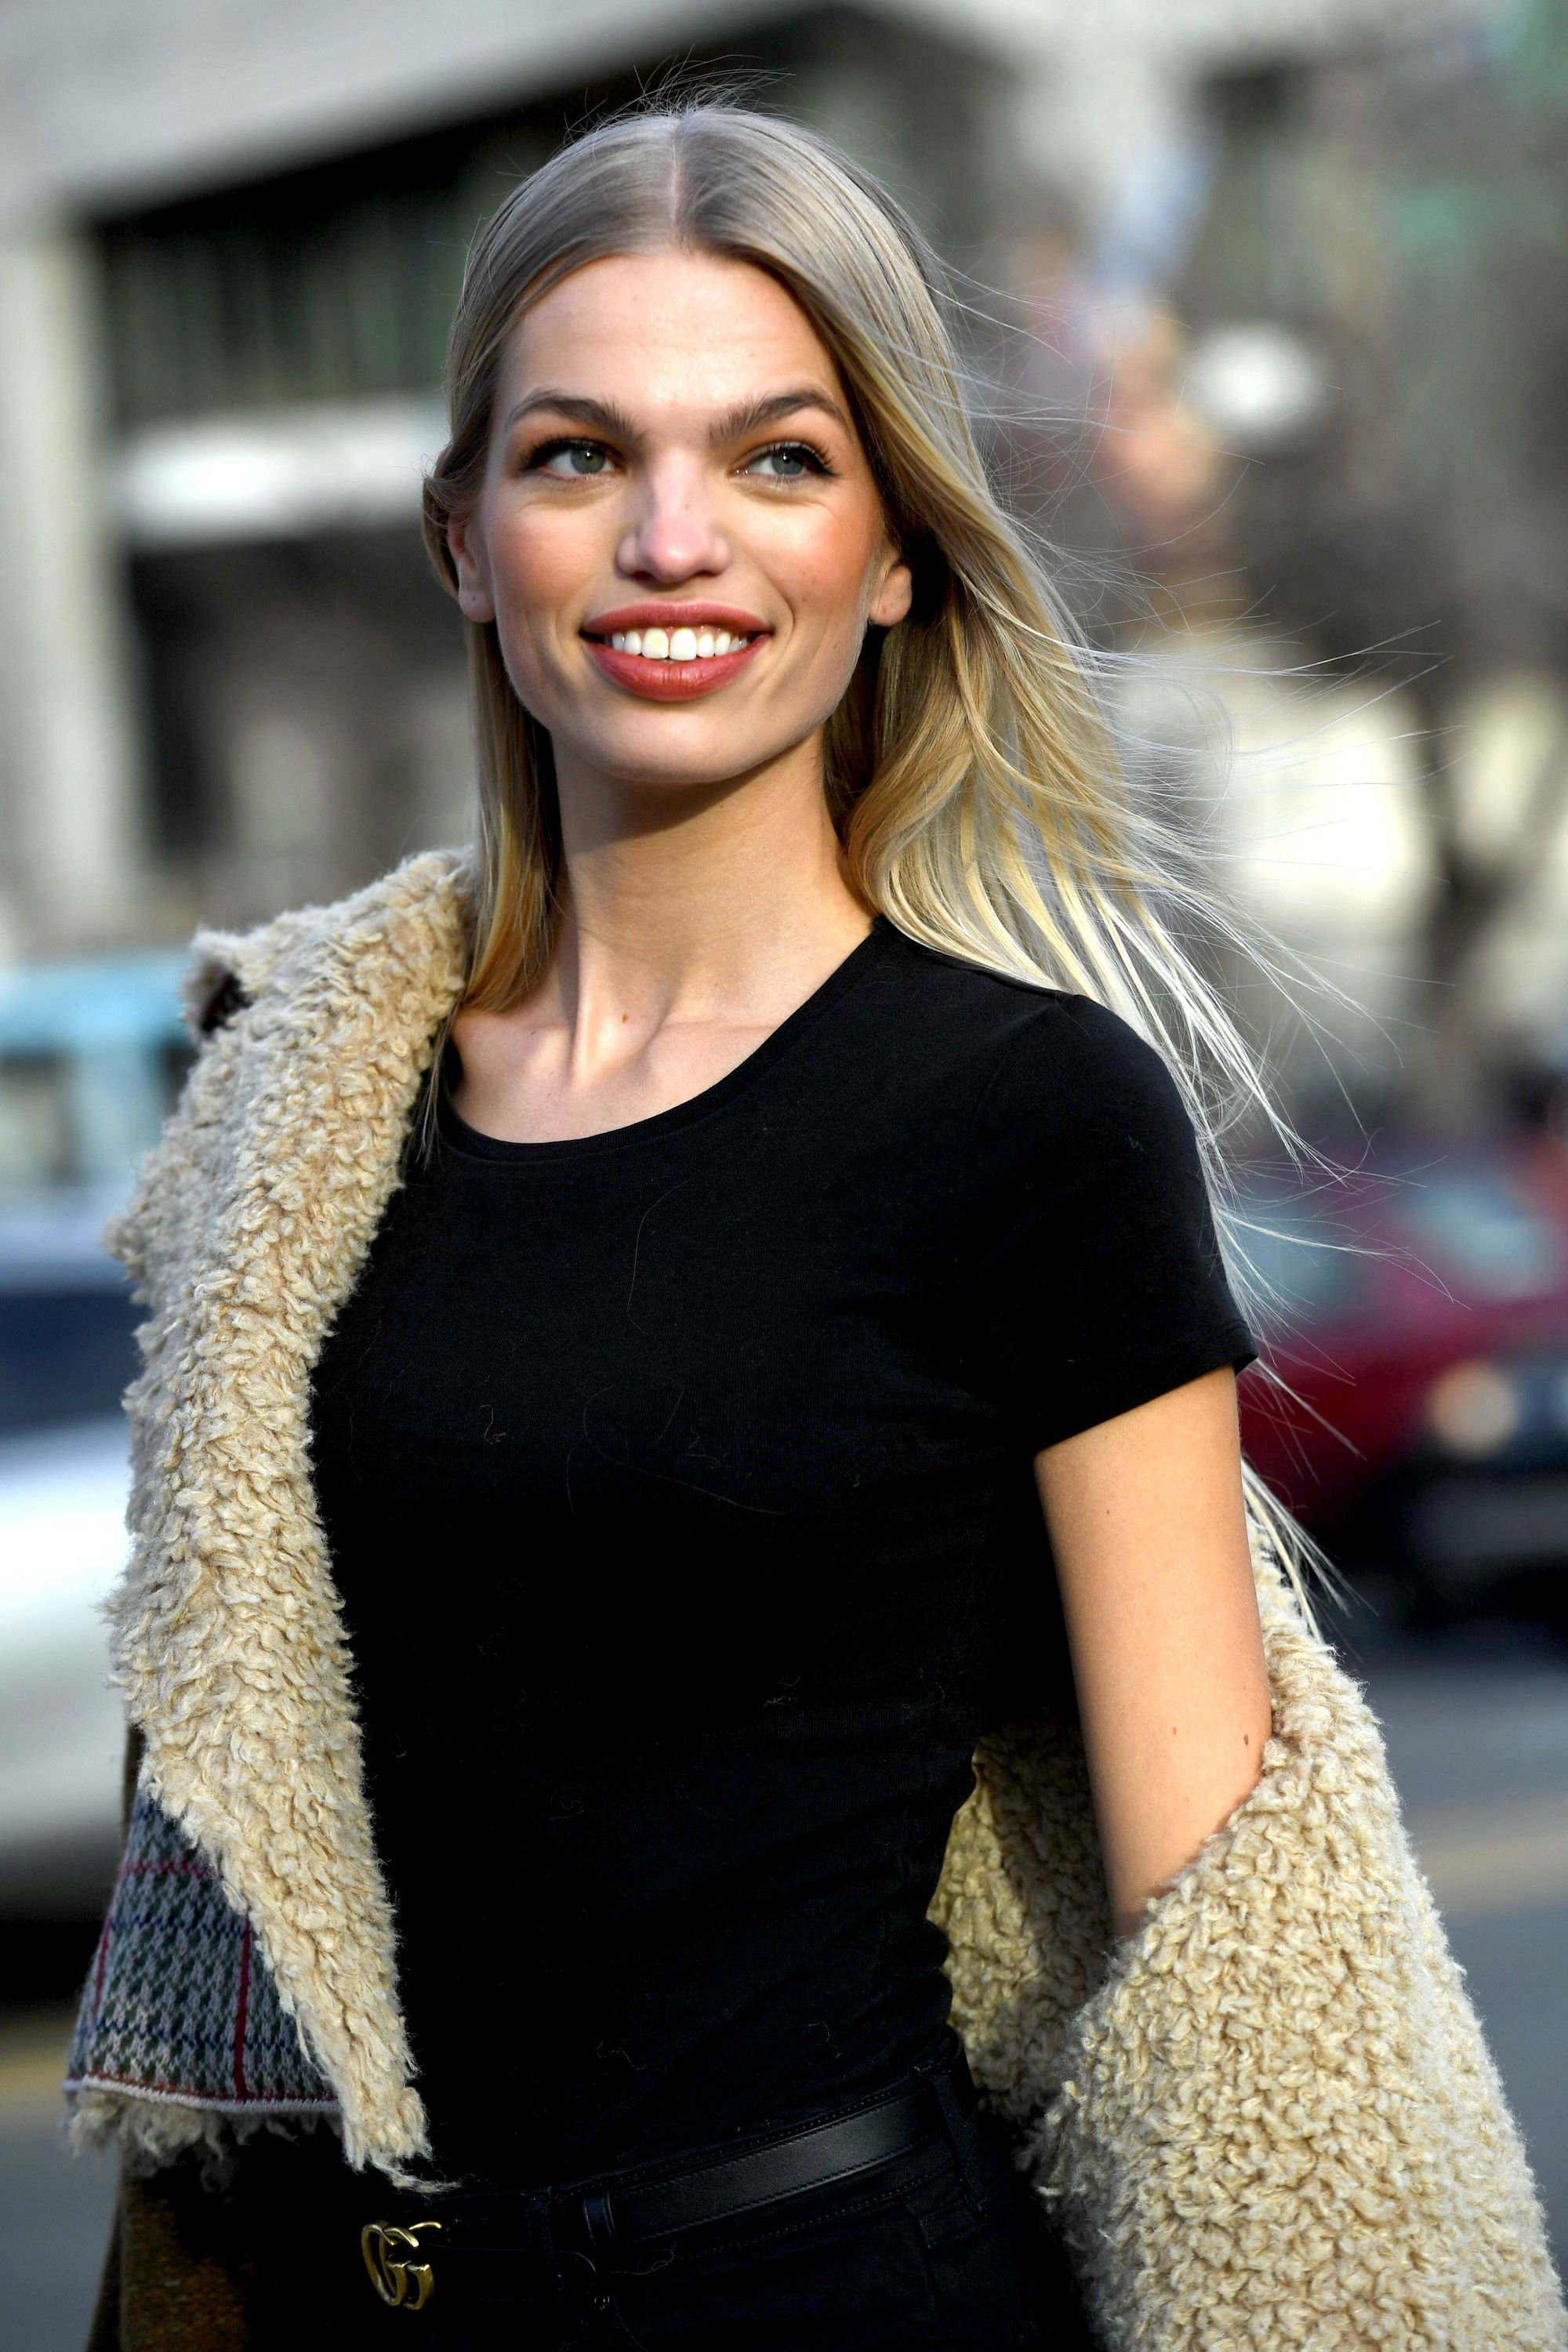 Shot of woman with long dark ash blonde hair with honey tones, wearing black shirt with borg jacket outside